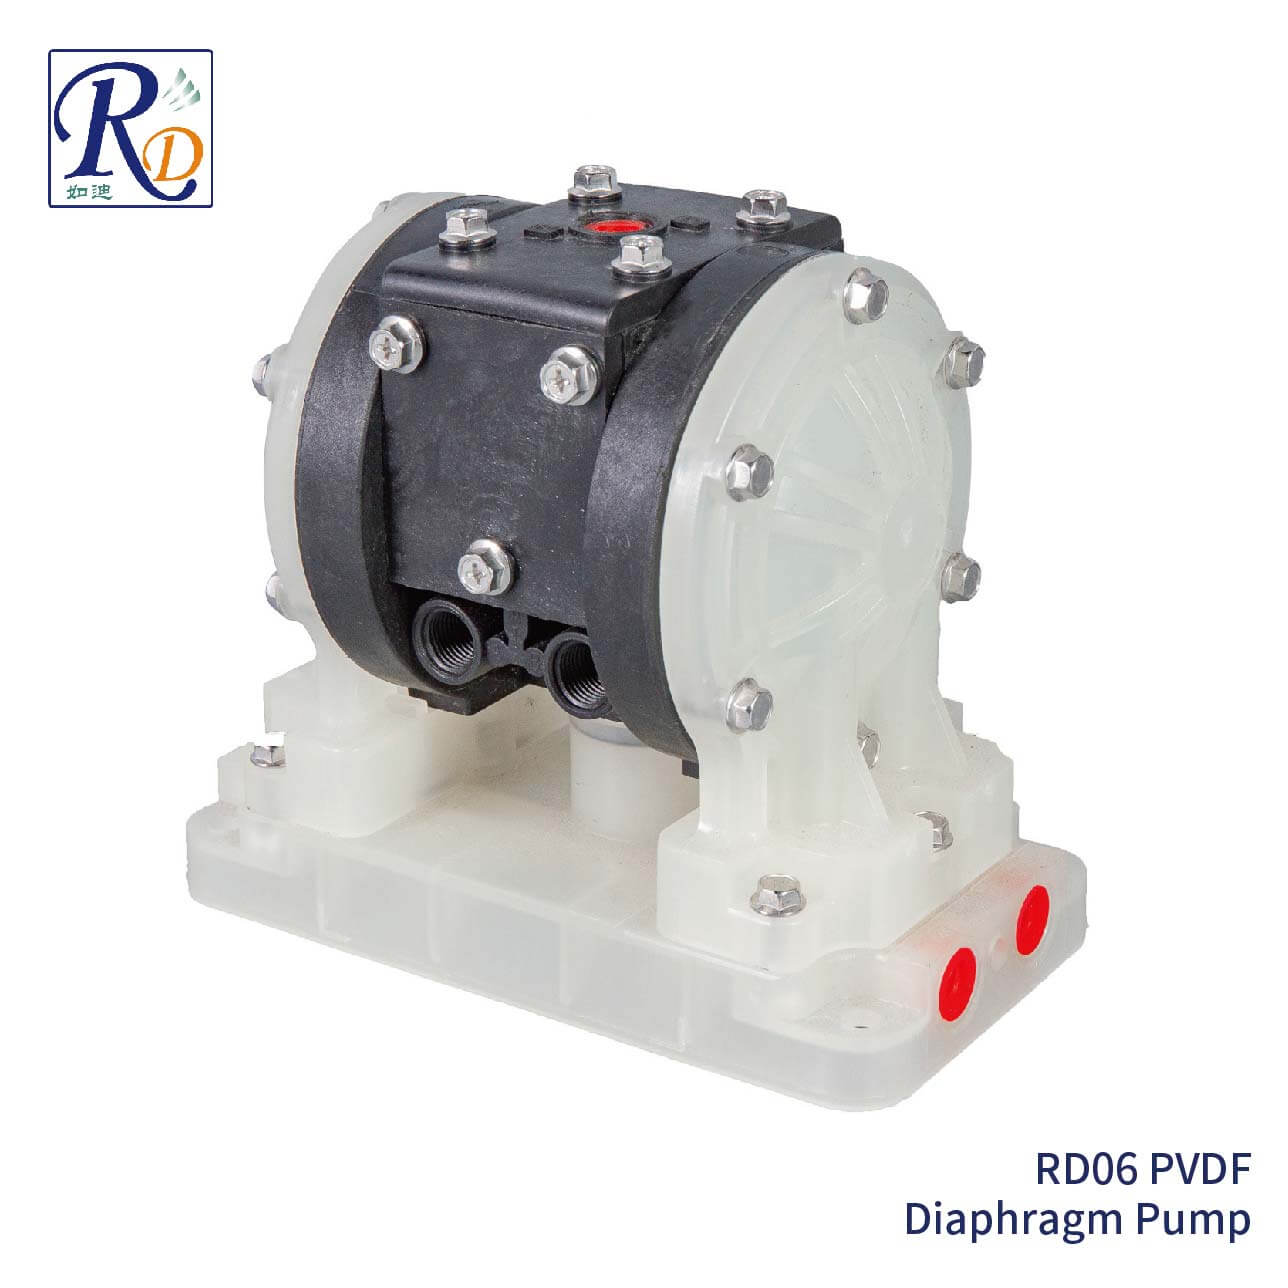 RD06 PVDF Diaphragm Pump